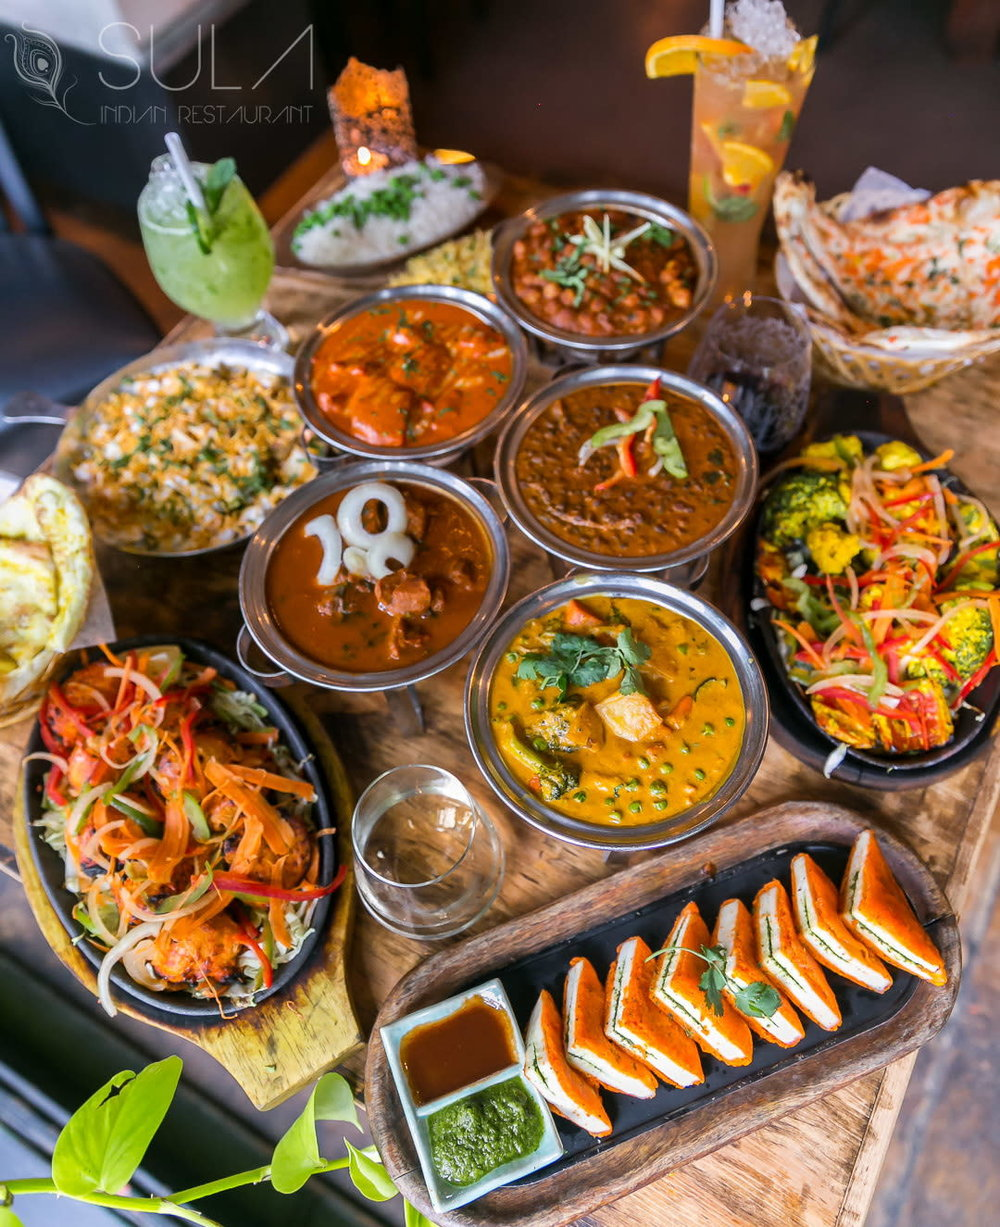 assortment-of-indian-food-near-me-in-vancouver_4000741C-477D-4987-94EA88CE46E30DE2_65c628bd-a771-4476-b363aff299c21f20.jpg